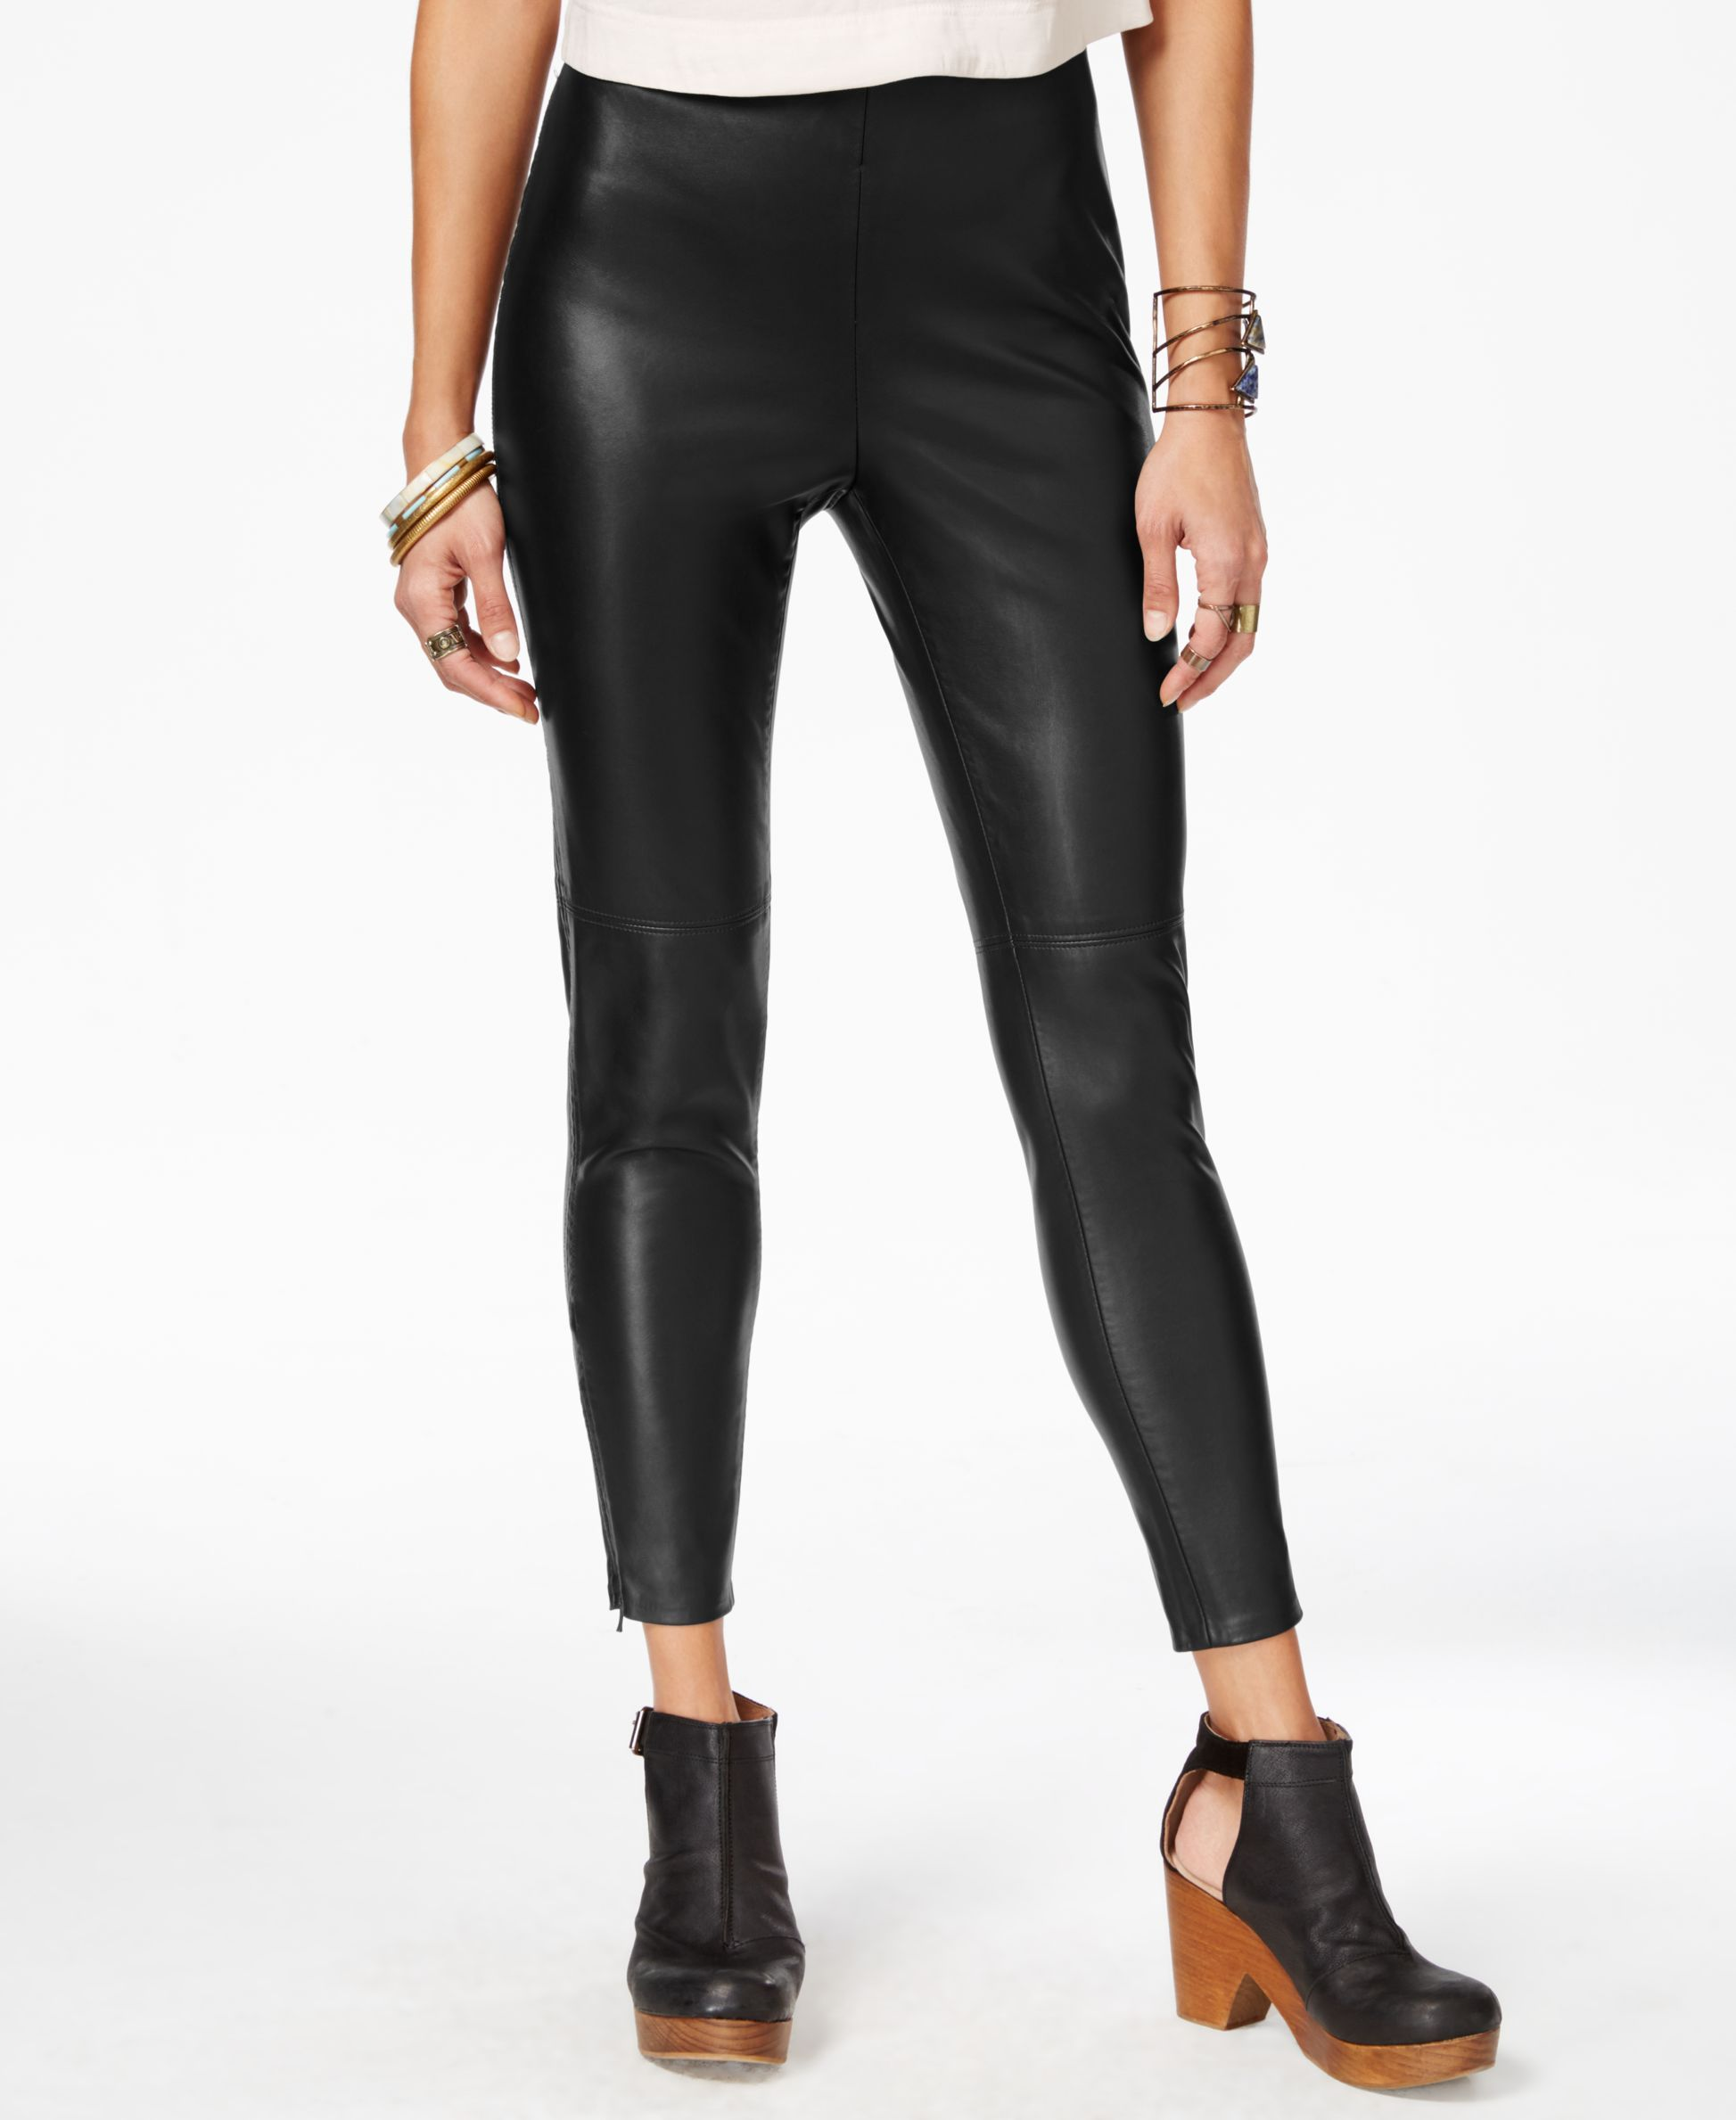 c72b6e939fe334 Free People Faux-Leather Zip-Detail Leggings | Products | Faux ...